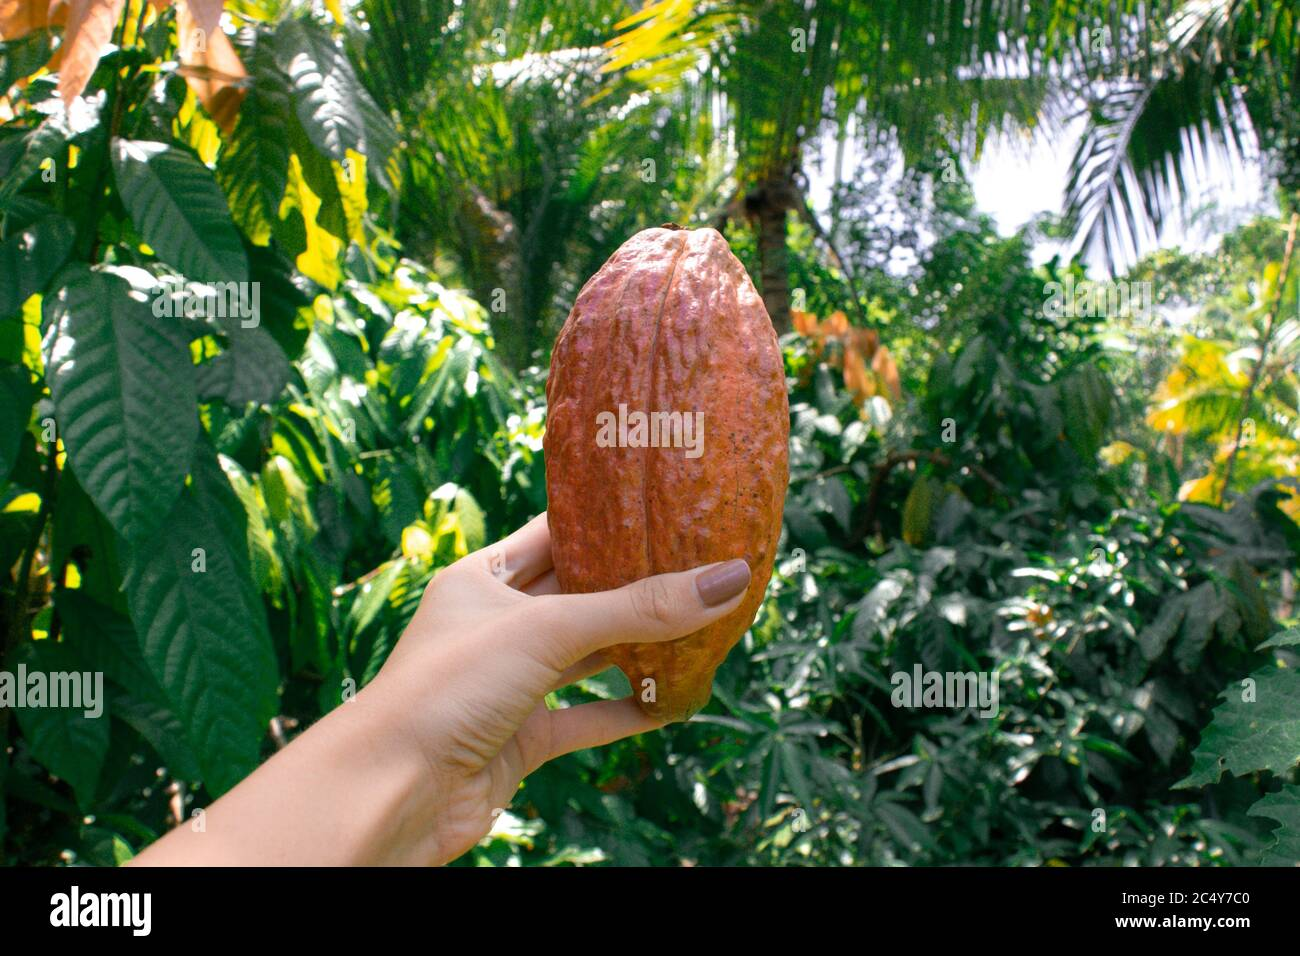 A young woman grips a Cacao pod in its natural habitat. Stock Photo